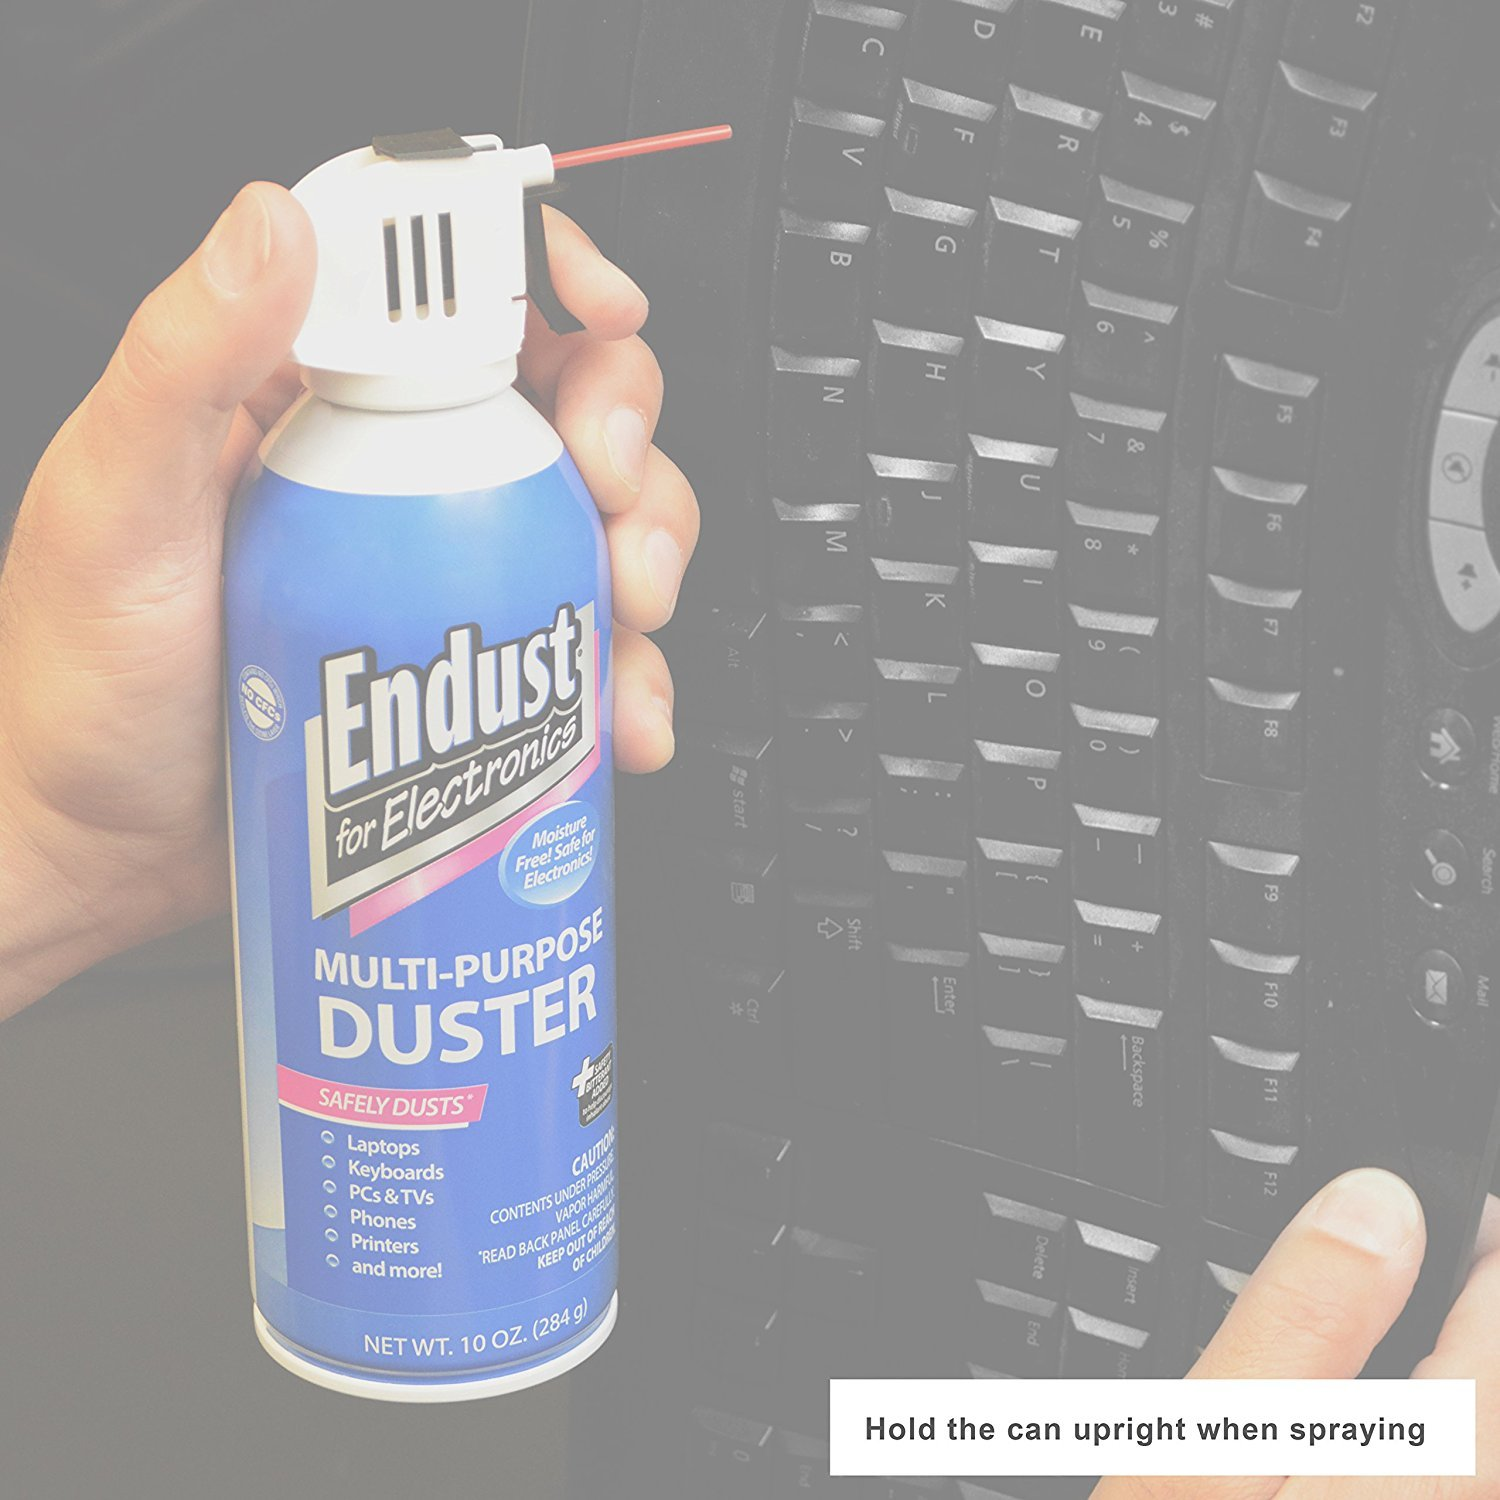 Endust for Electronics, Twin Pack, 2 Compressed dusters, 10 oz per can, Contains bitterant (11407) by Endust (Image #3)